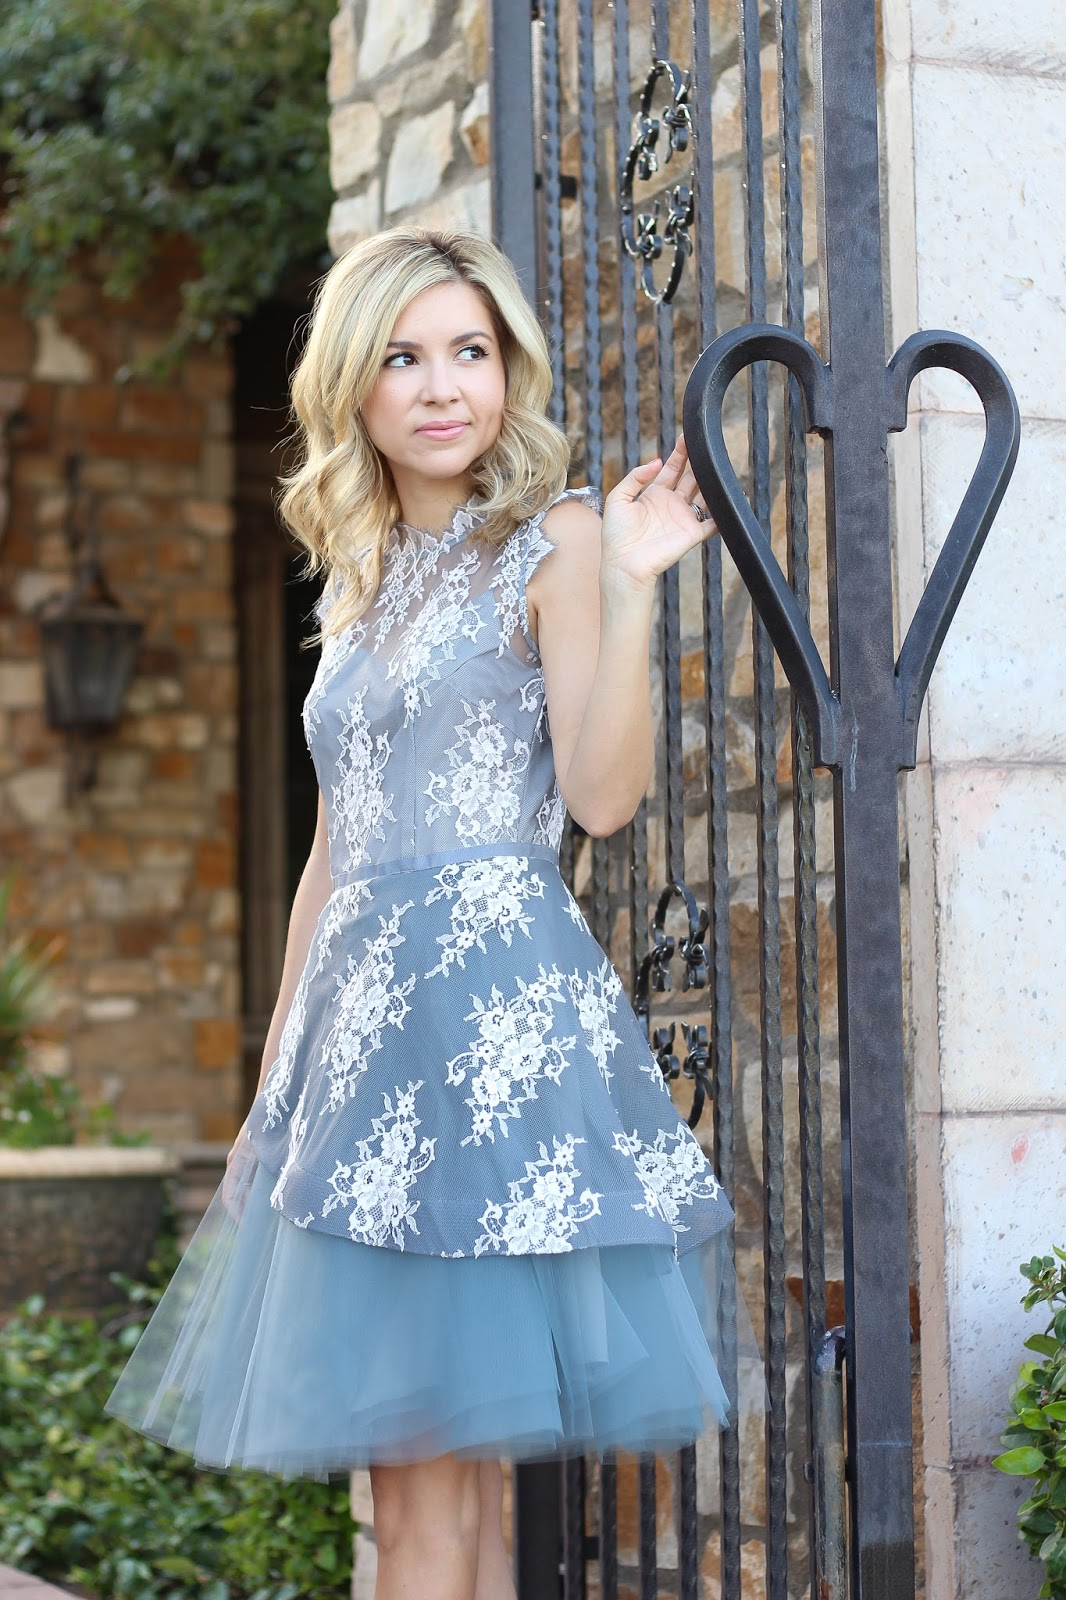 Details - lace - tulle - blue dress